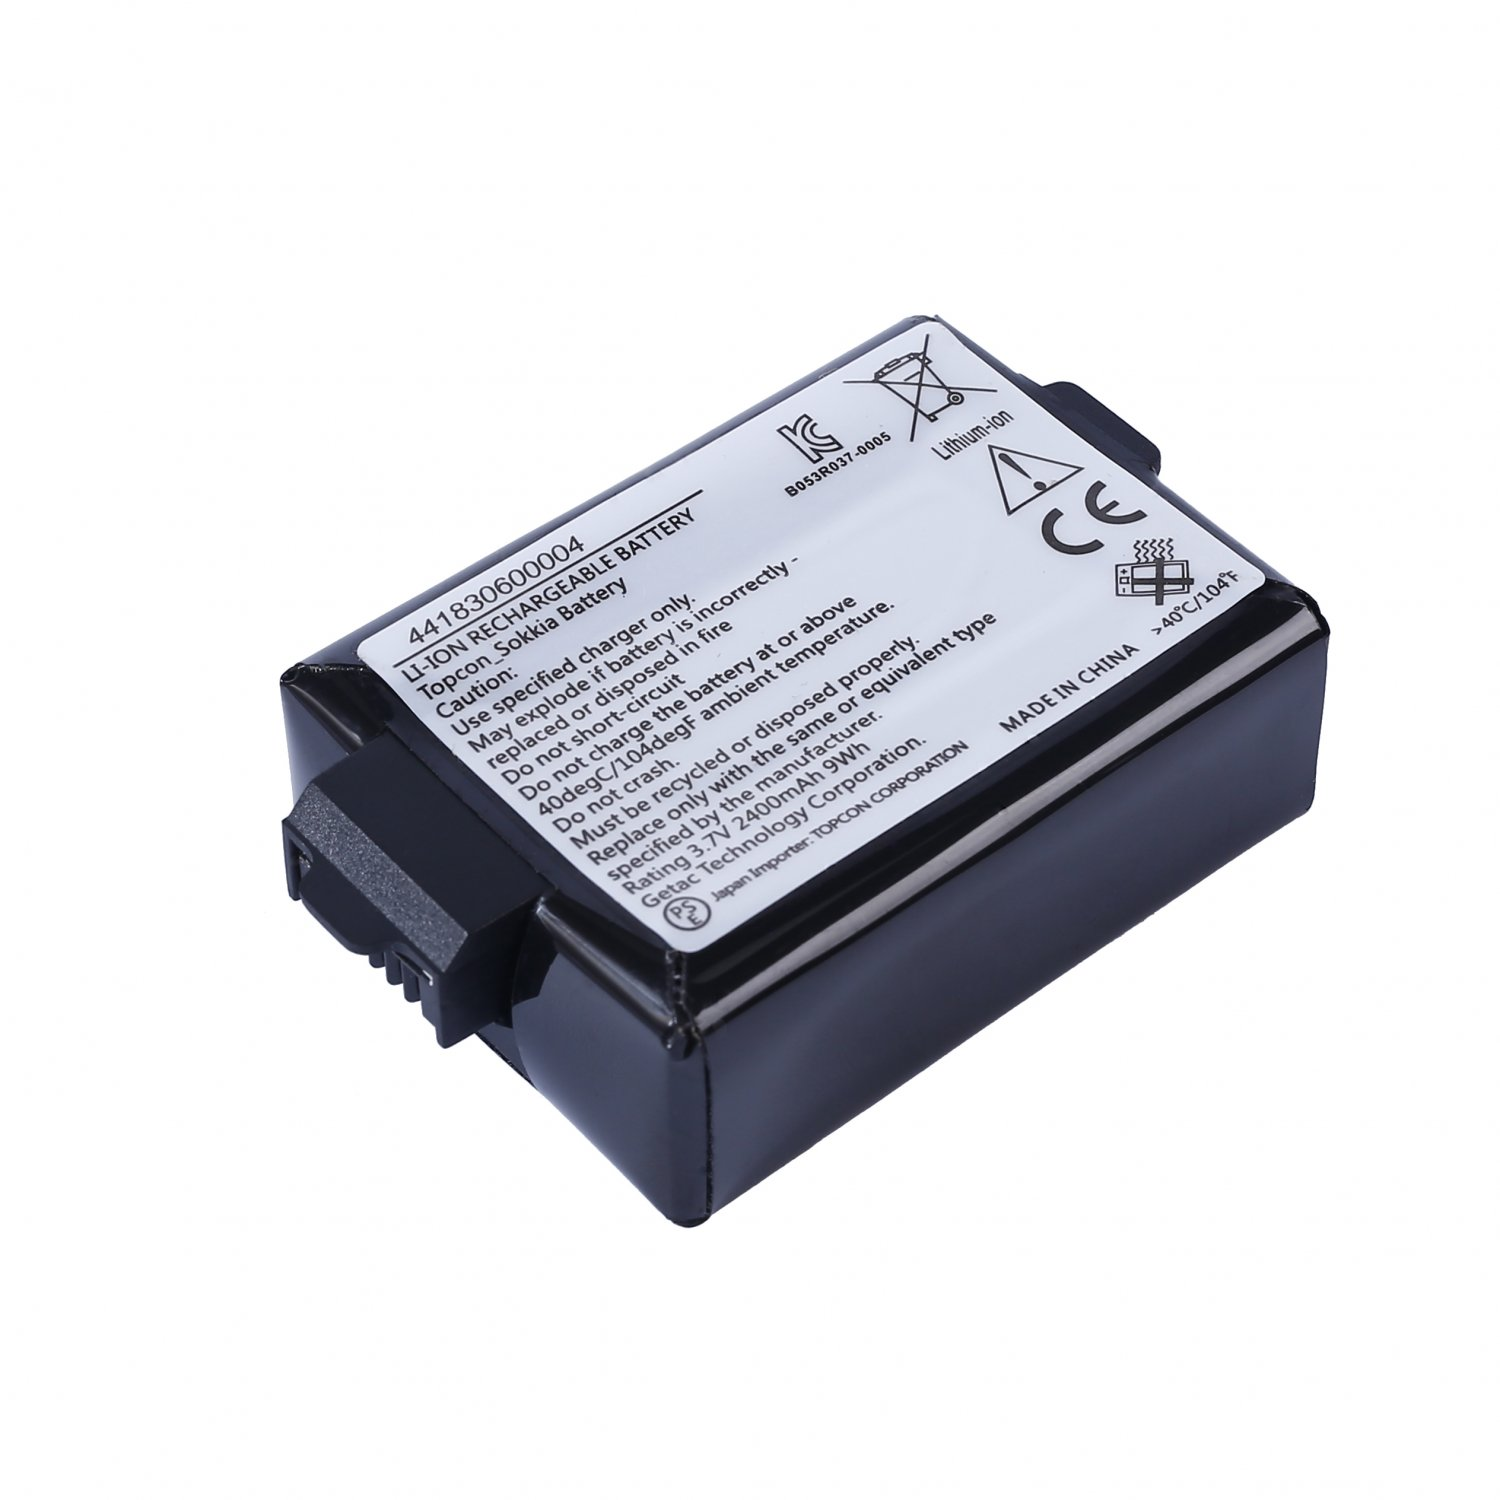 441830600005 441830600004 Battery For Getac PS535 PS535E PS535F